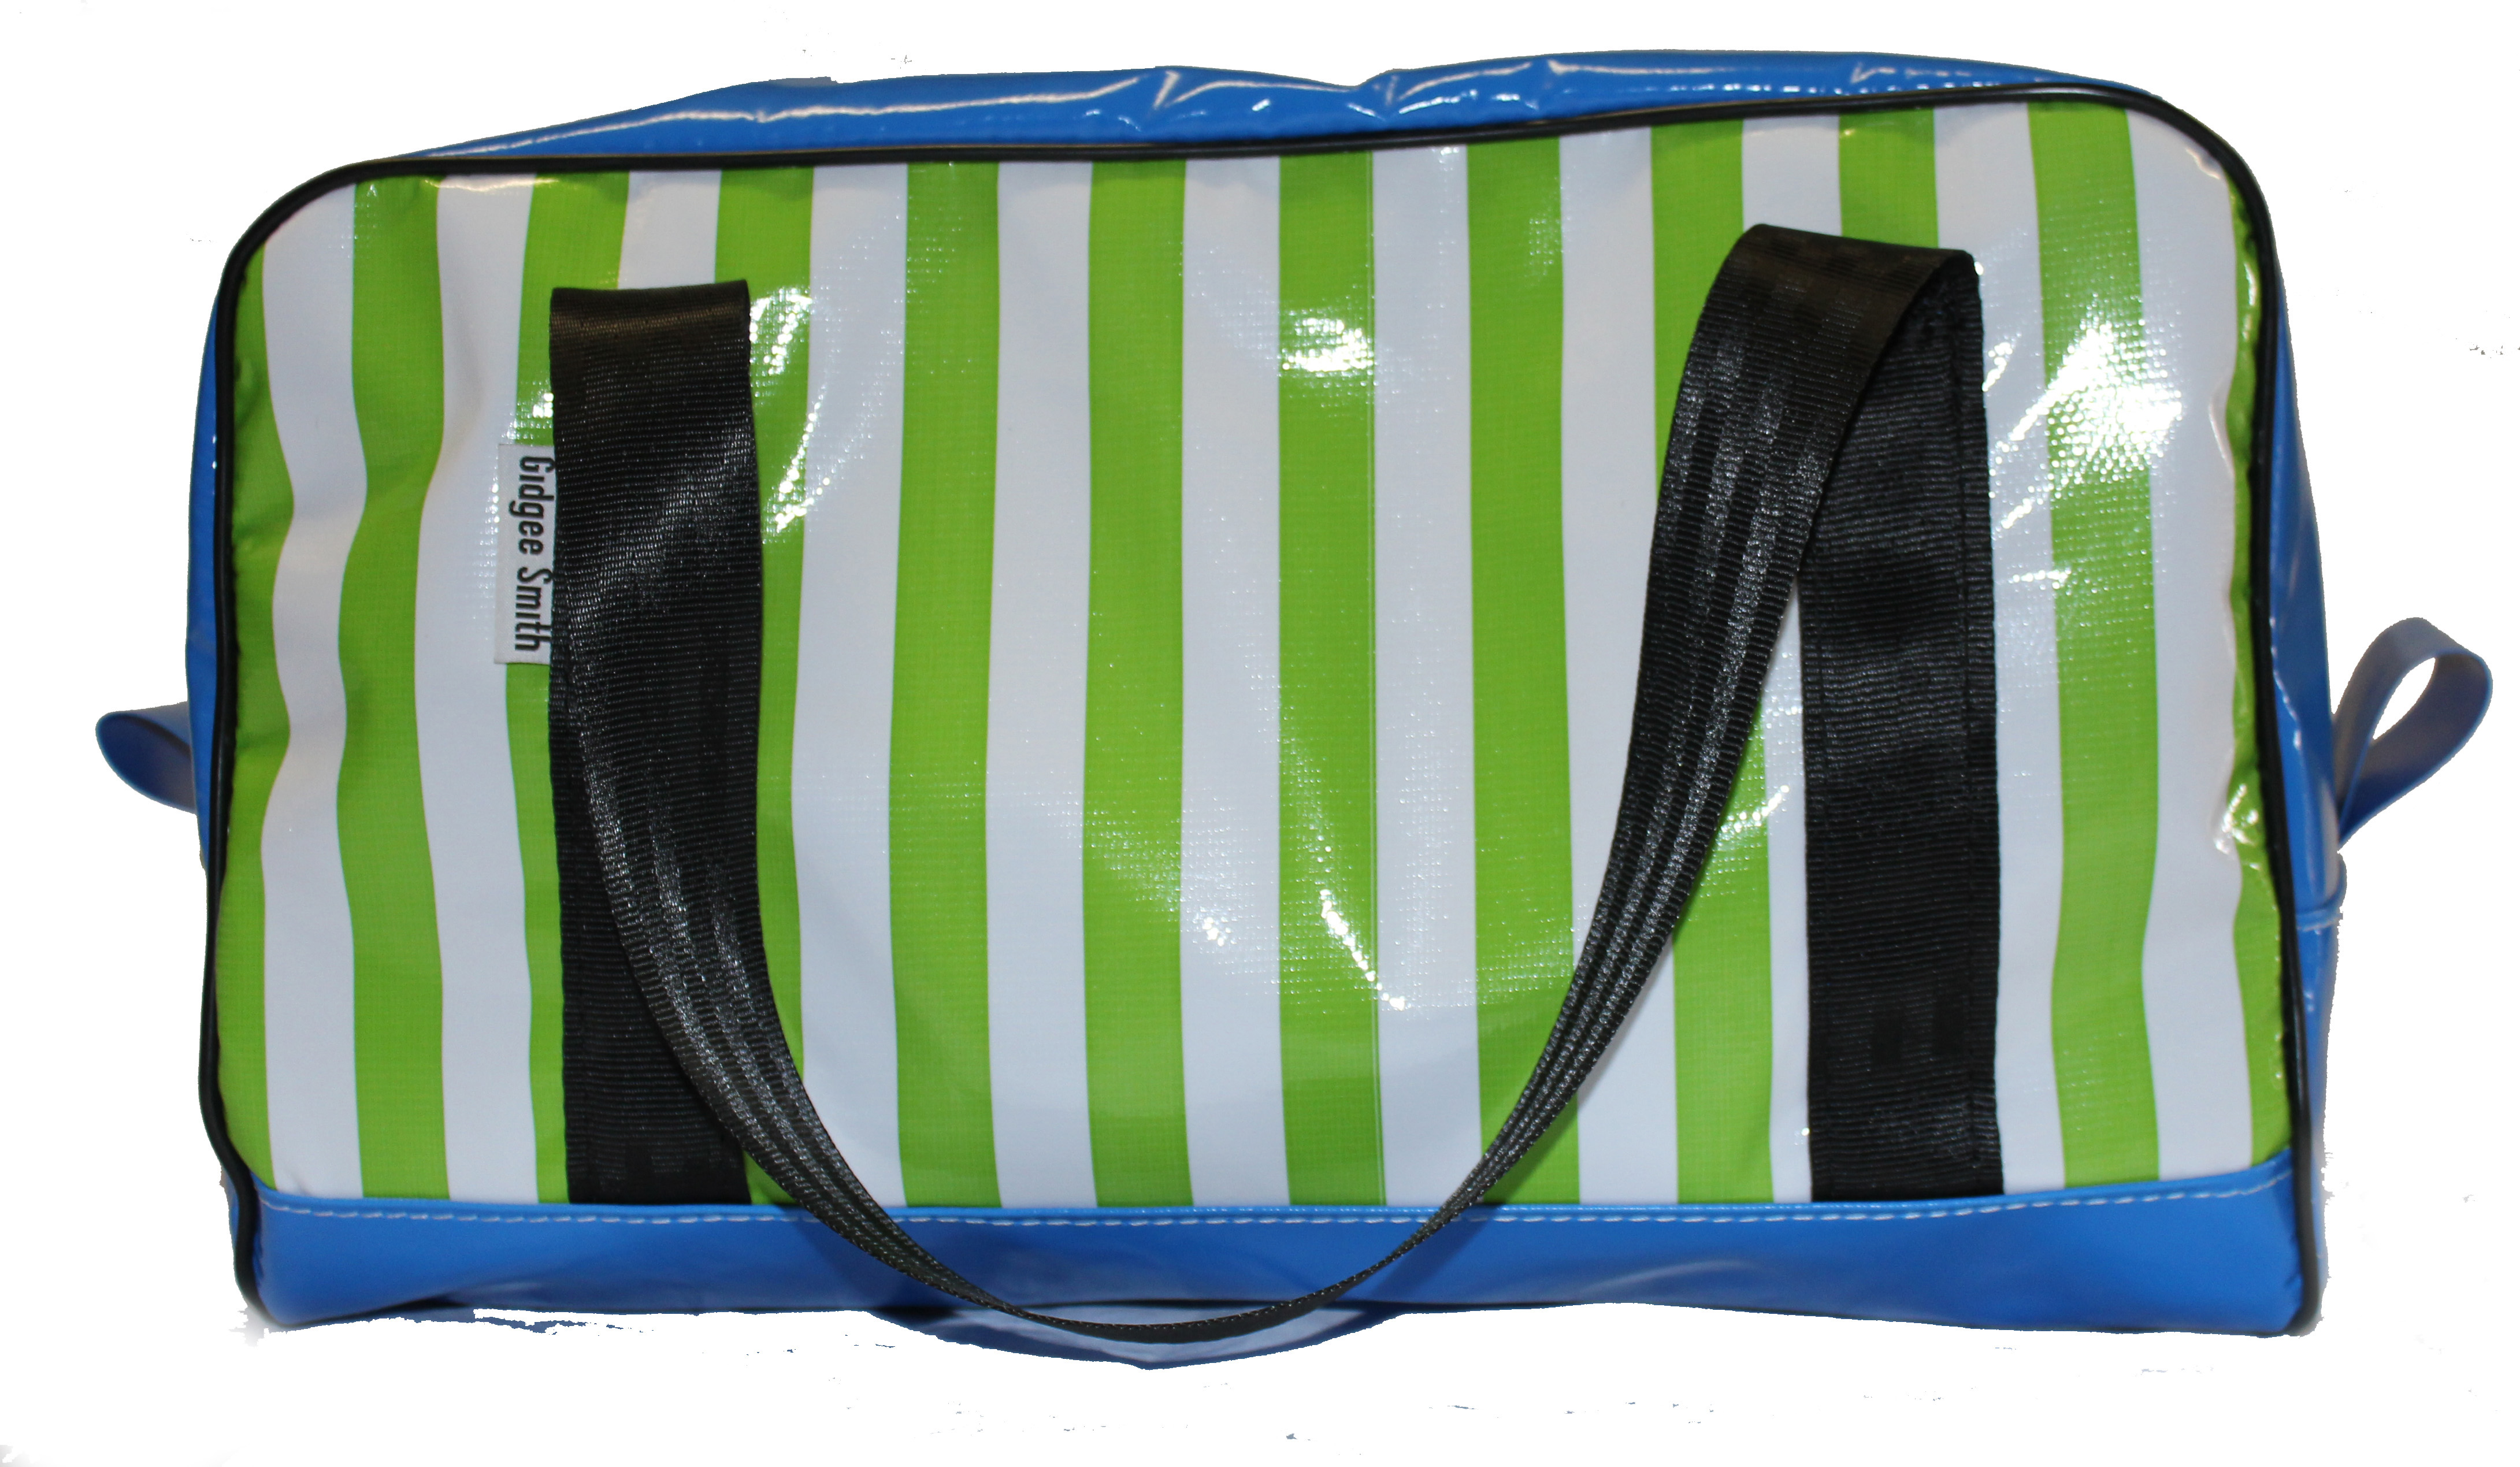 carry-on-green-candy-bright-blue-edited-1.jpg